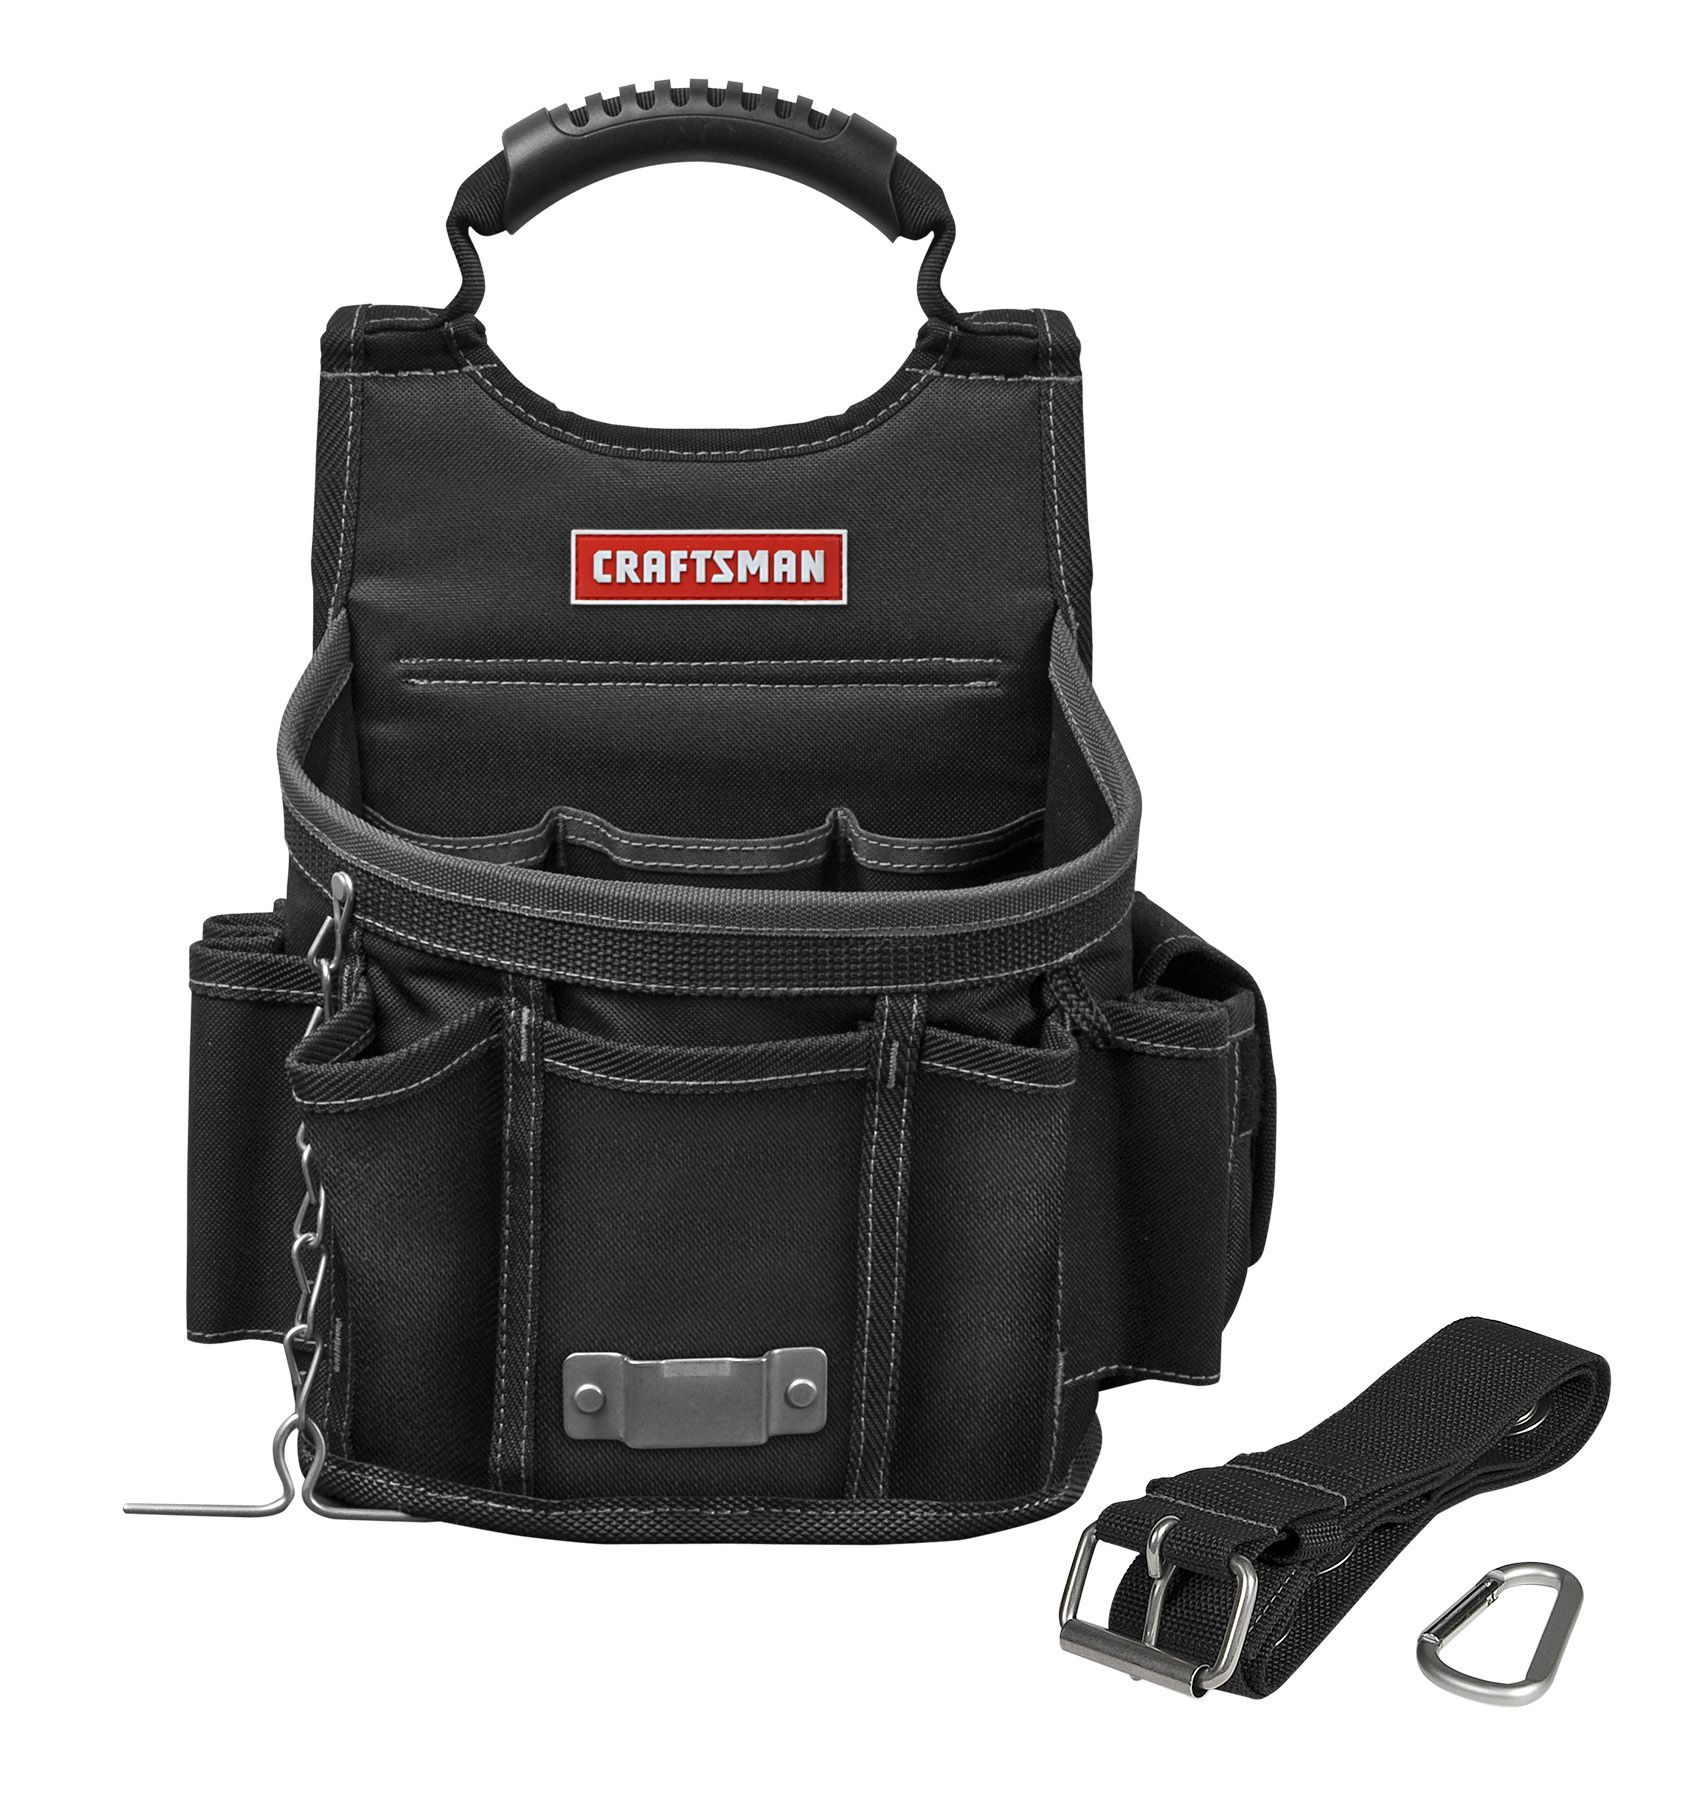 Craftsman Heavy-Duty Electrician's Pouch